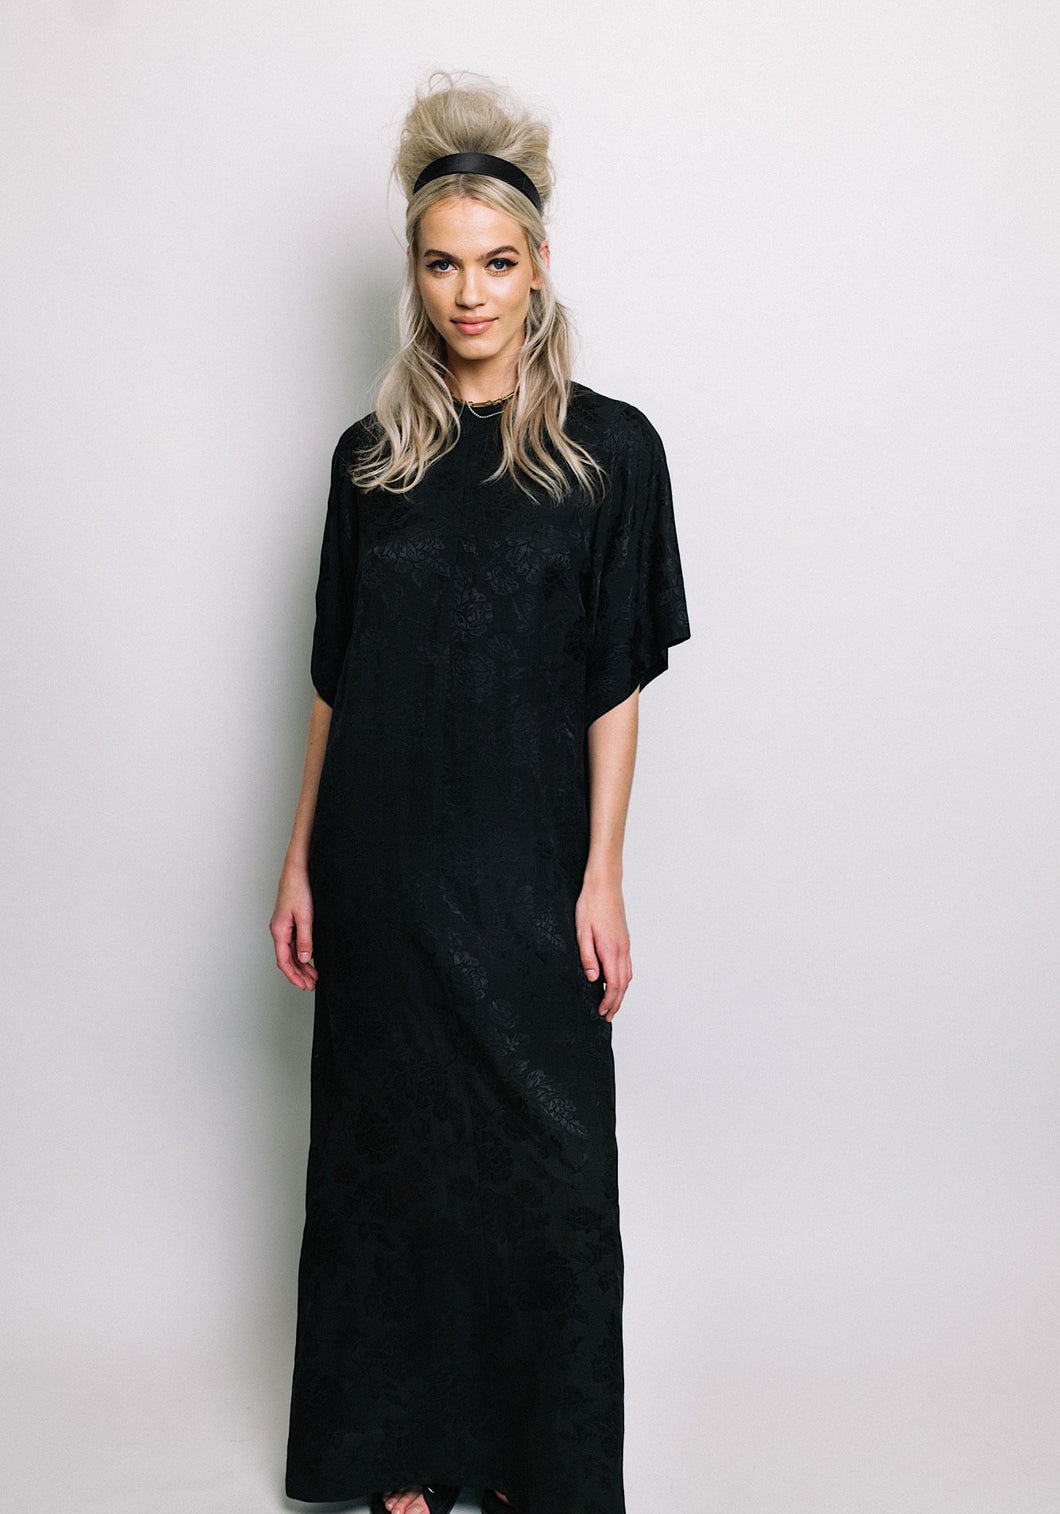 Kimono Sleeve Dress Black Rose